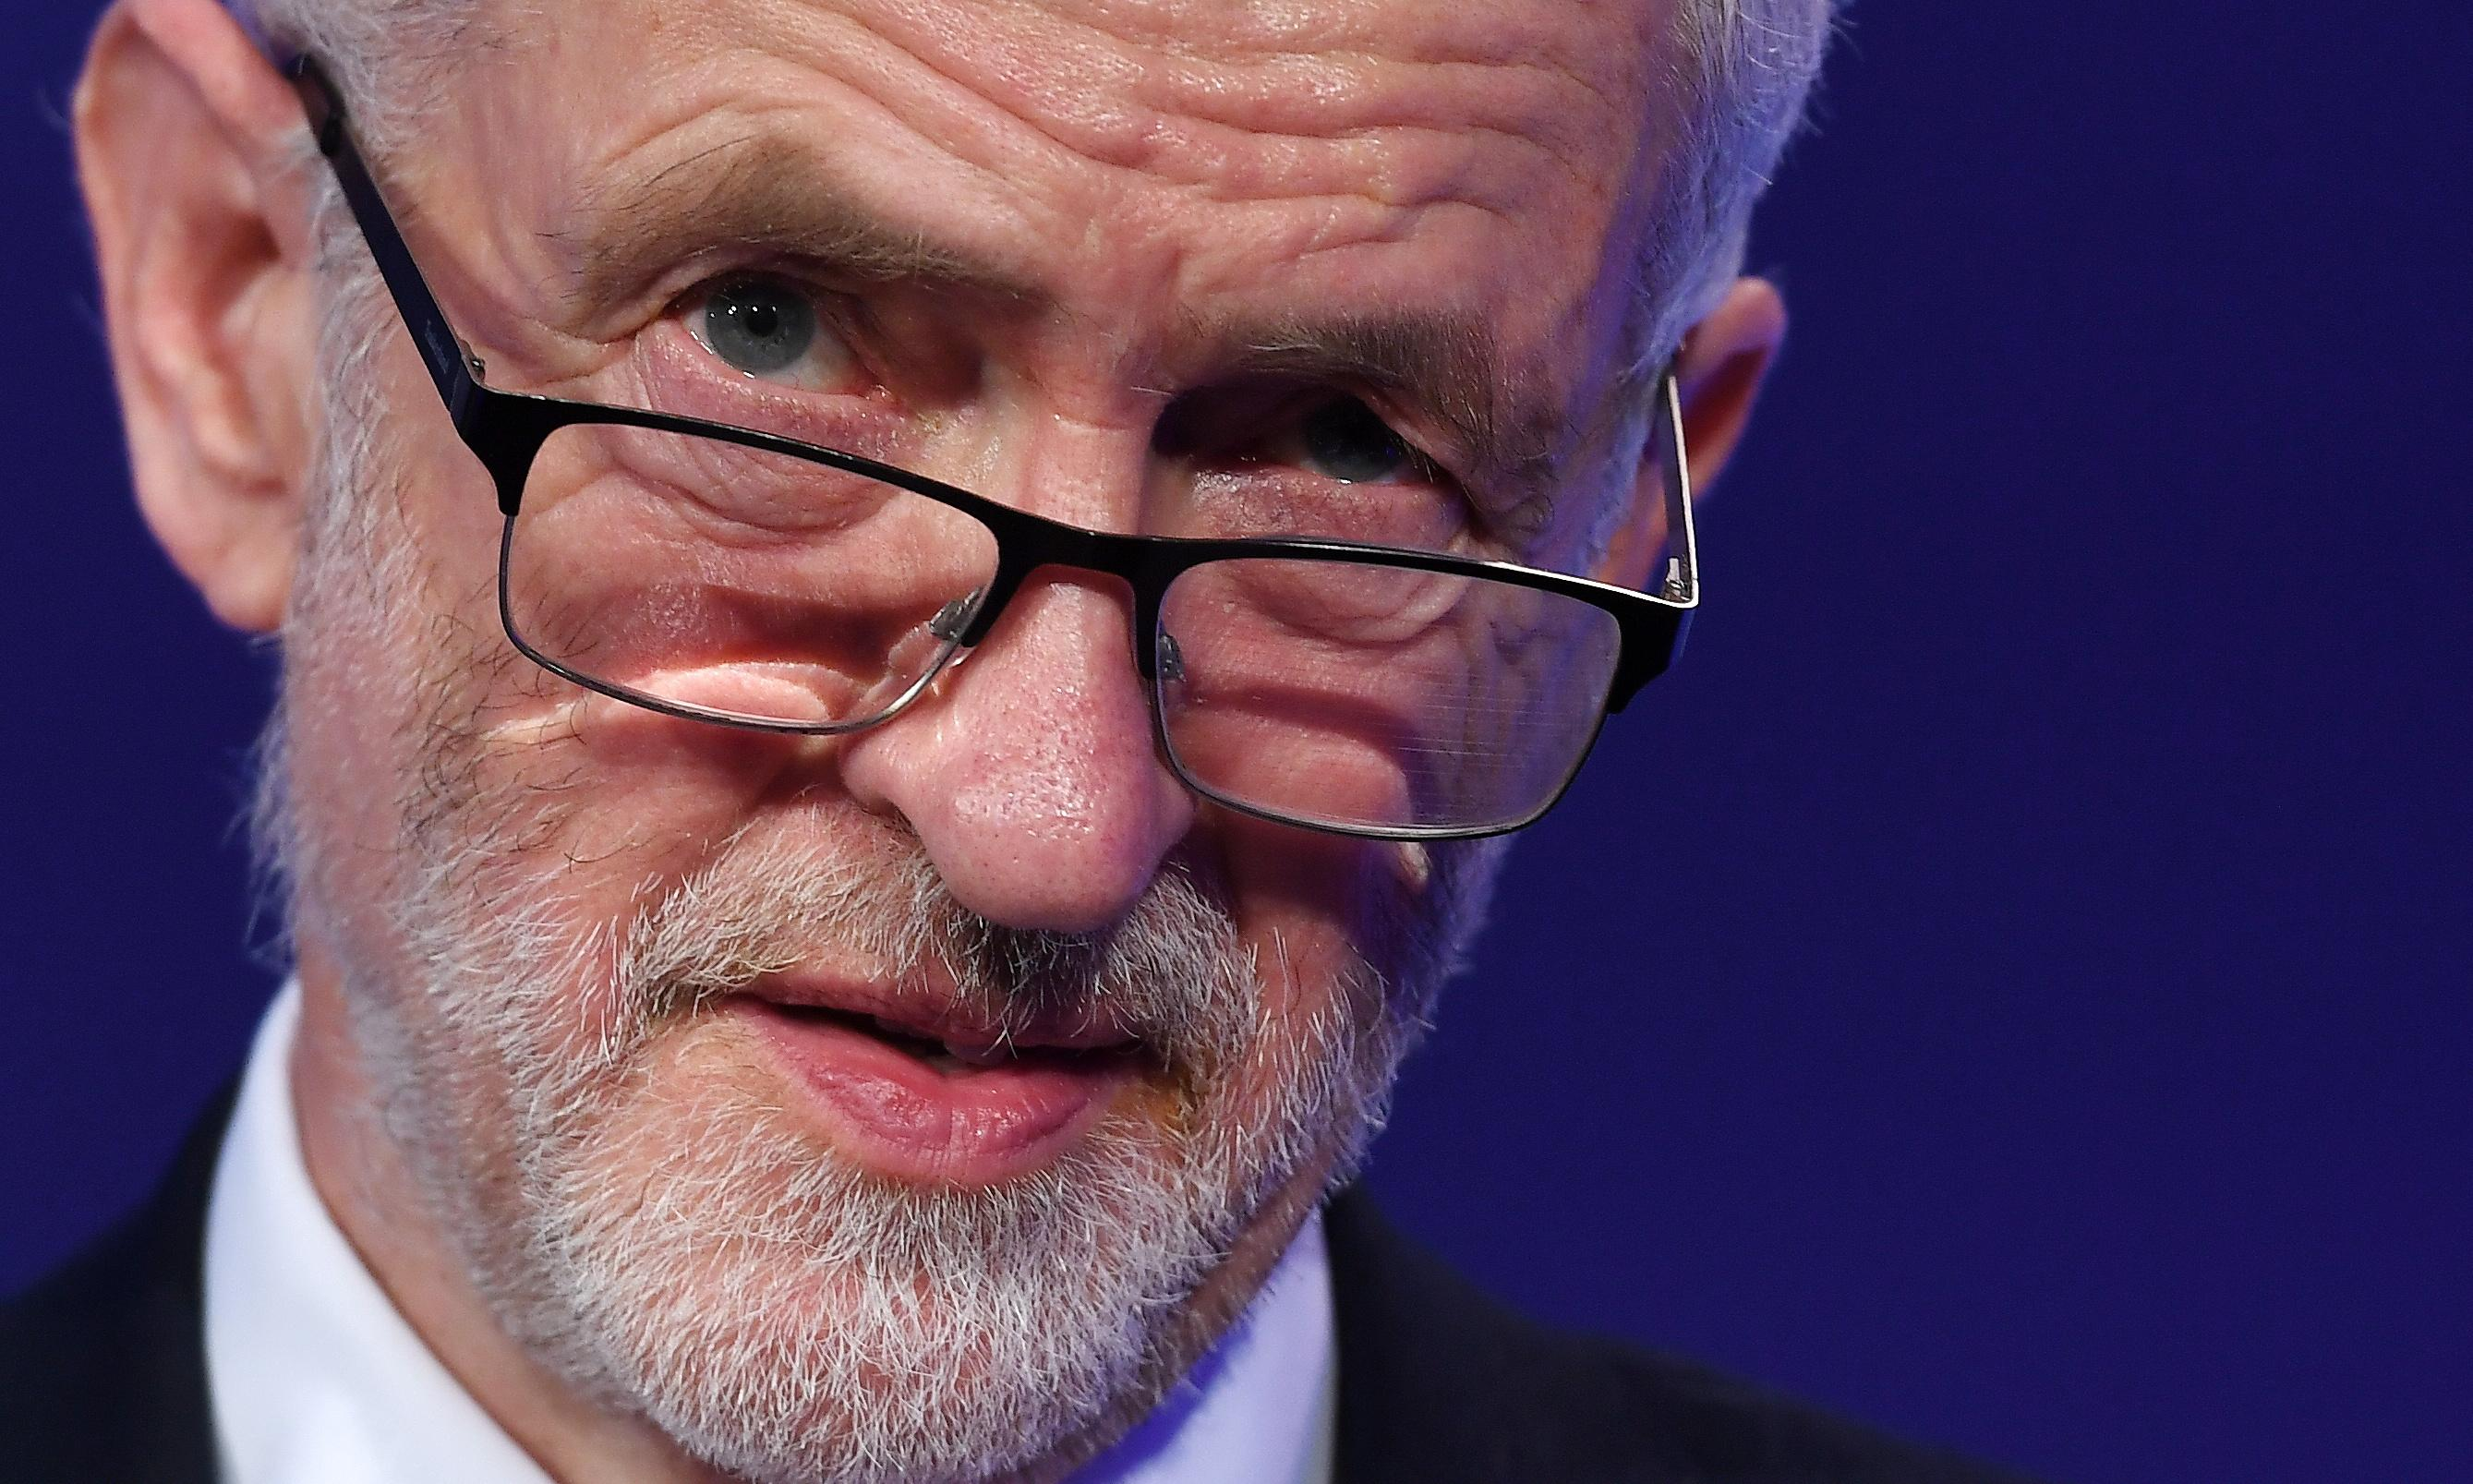 At times like these, Corbyn is his own worst enemy